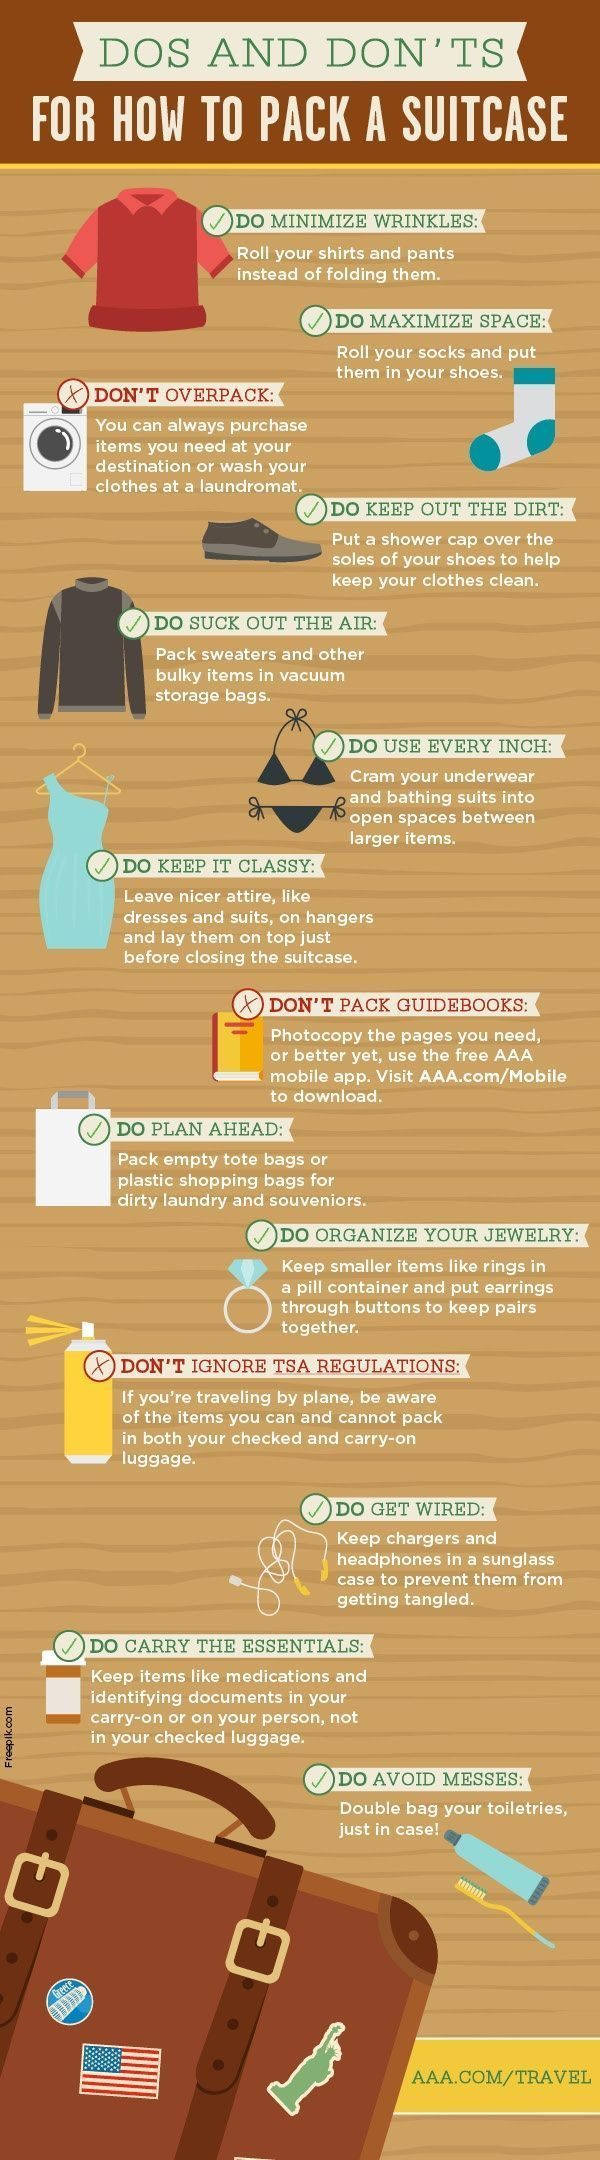 how to pack a suitcase #packingadvice